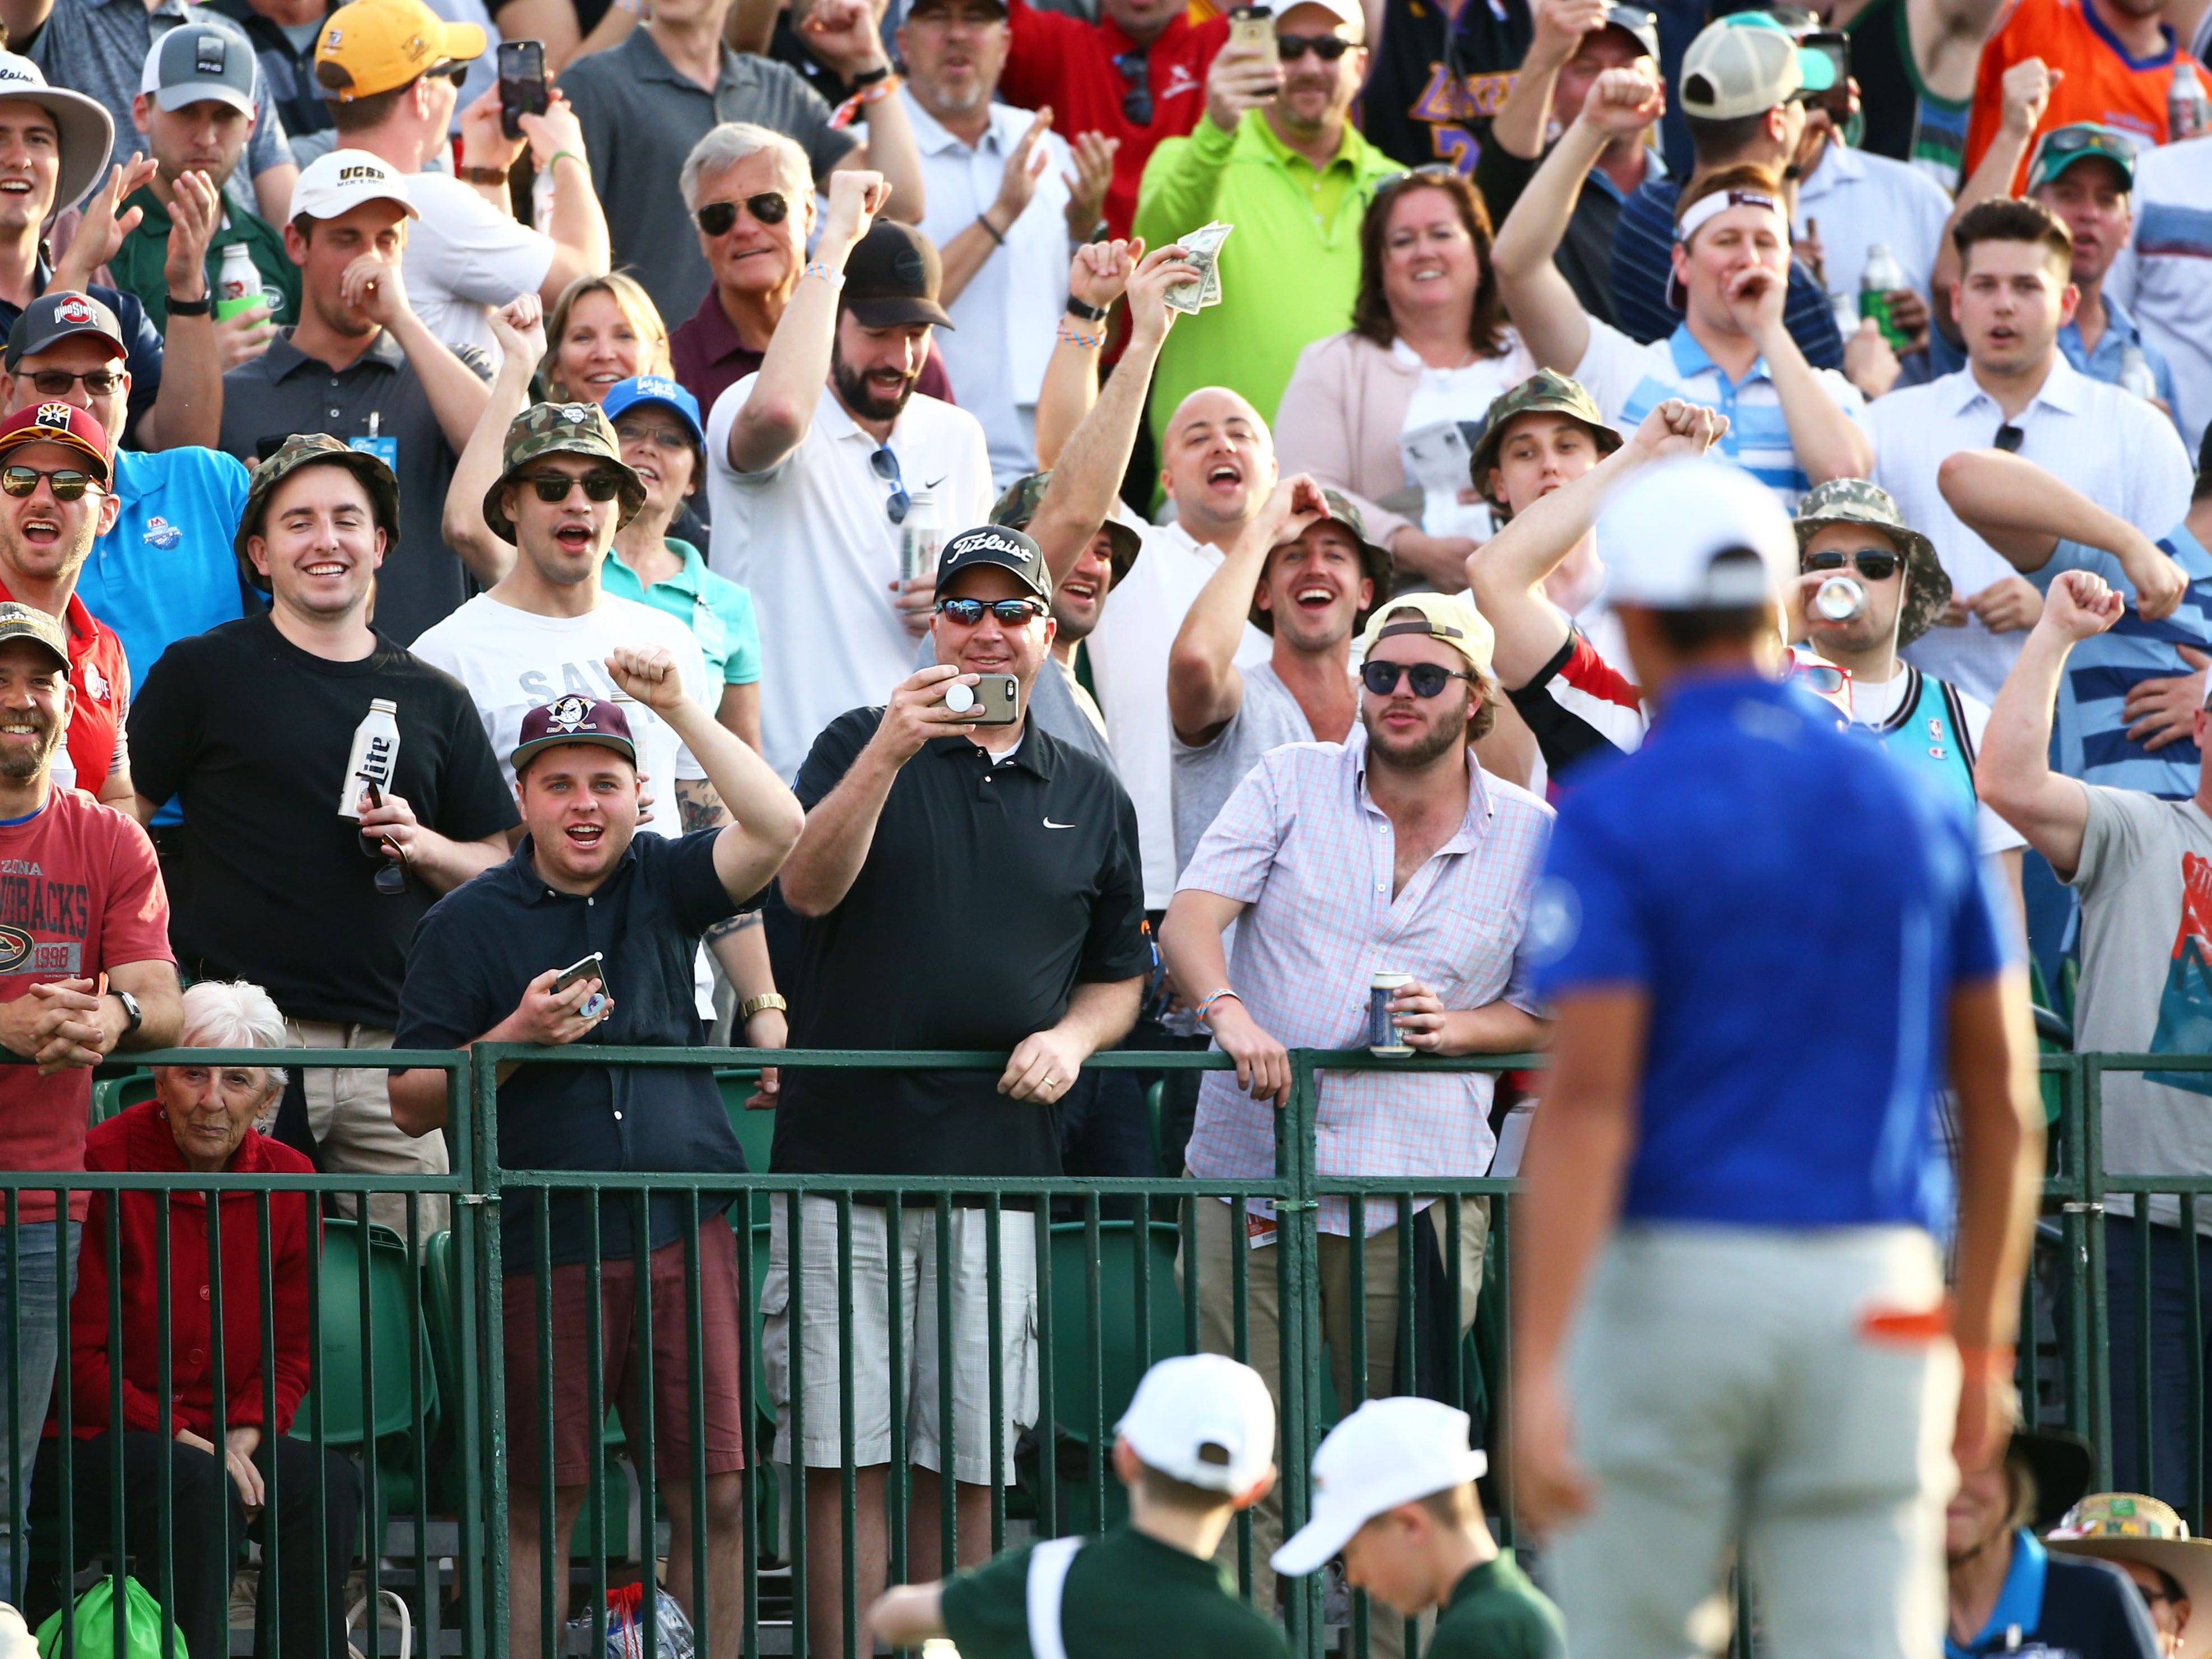 Fans cheer after Rickie Fowler made a birdie on the 16th hole during second round action on Feb. 1 during the Waste Management Phoenix Open at the TPC Scottsdale Stadium Course.